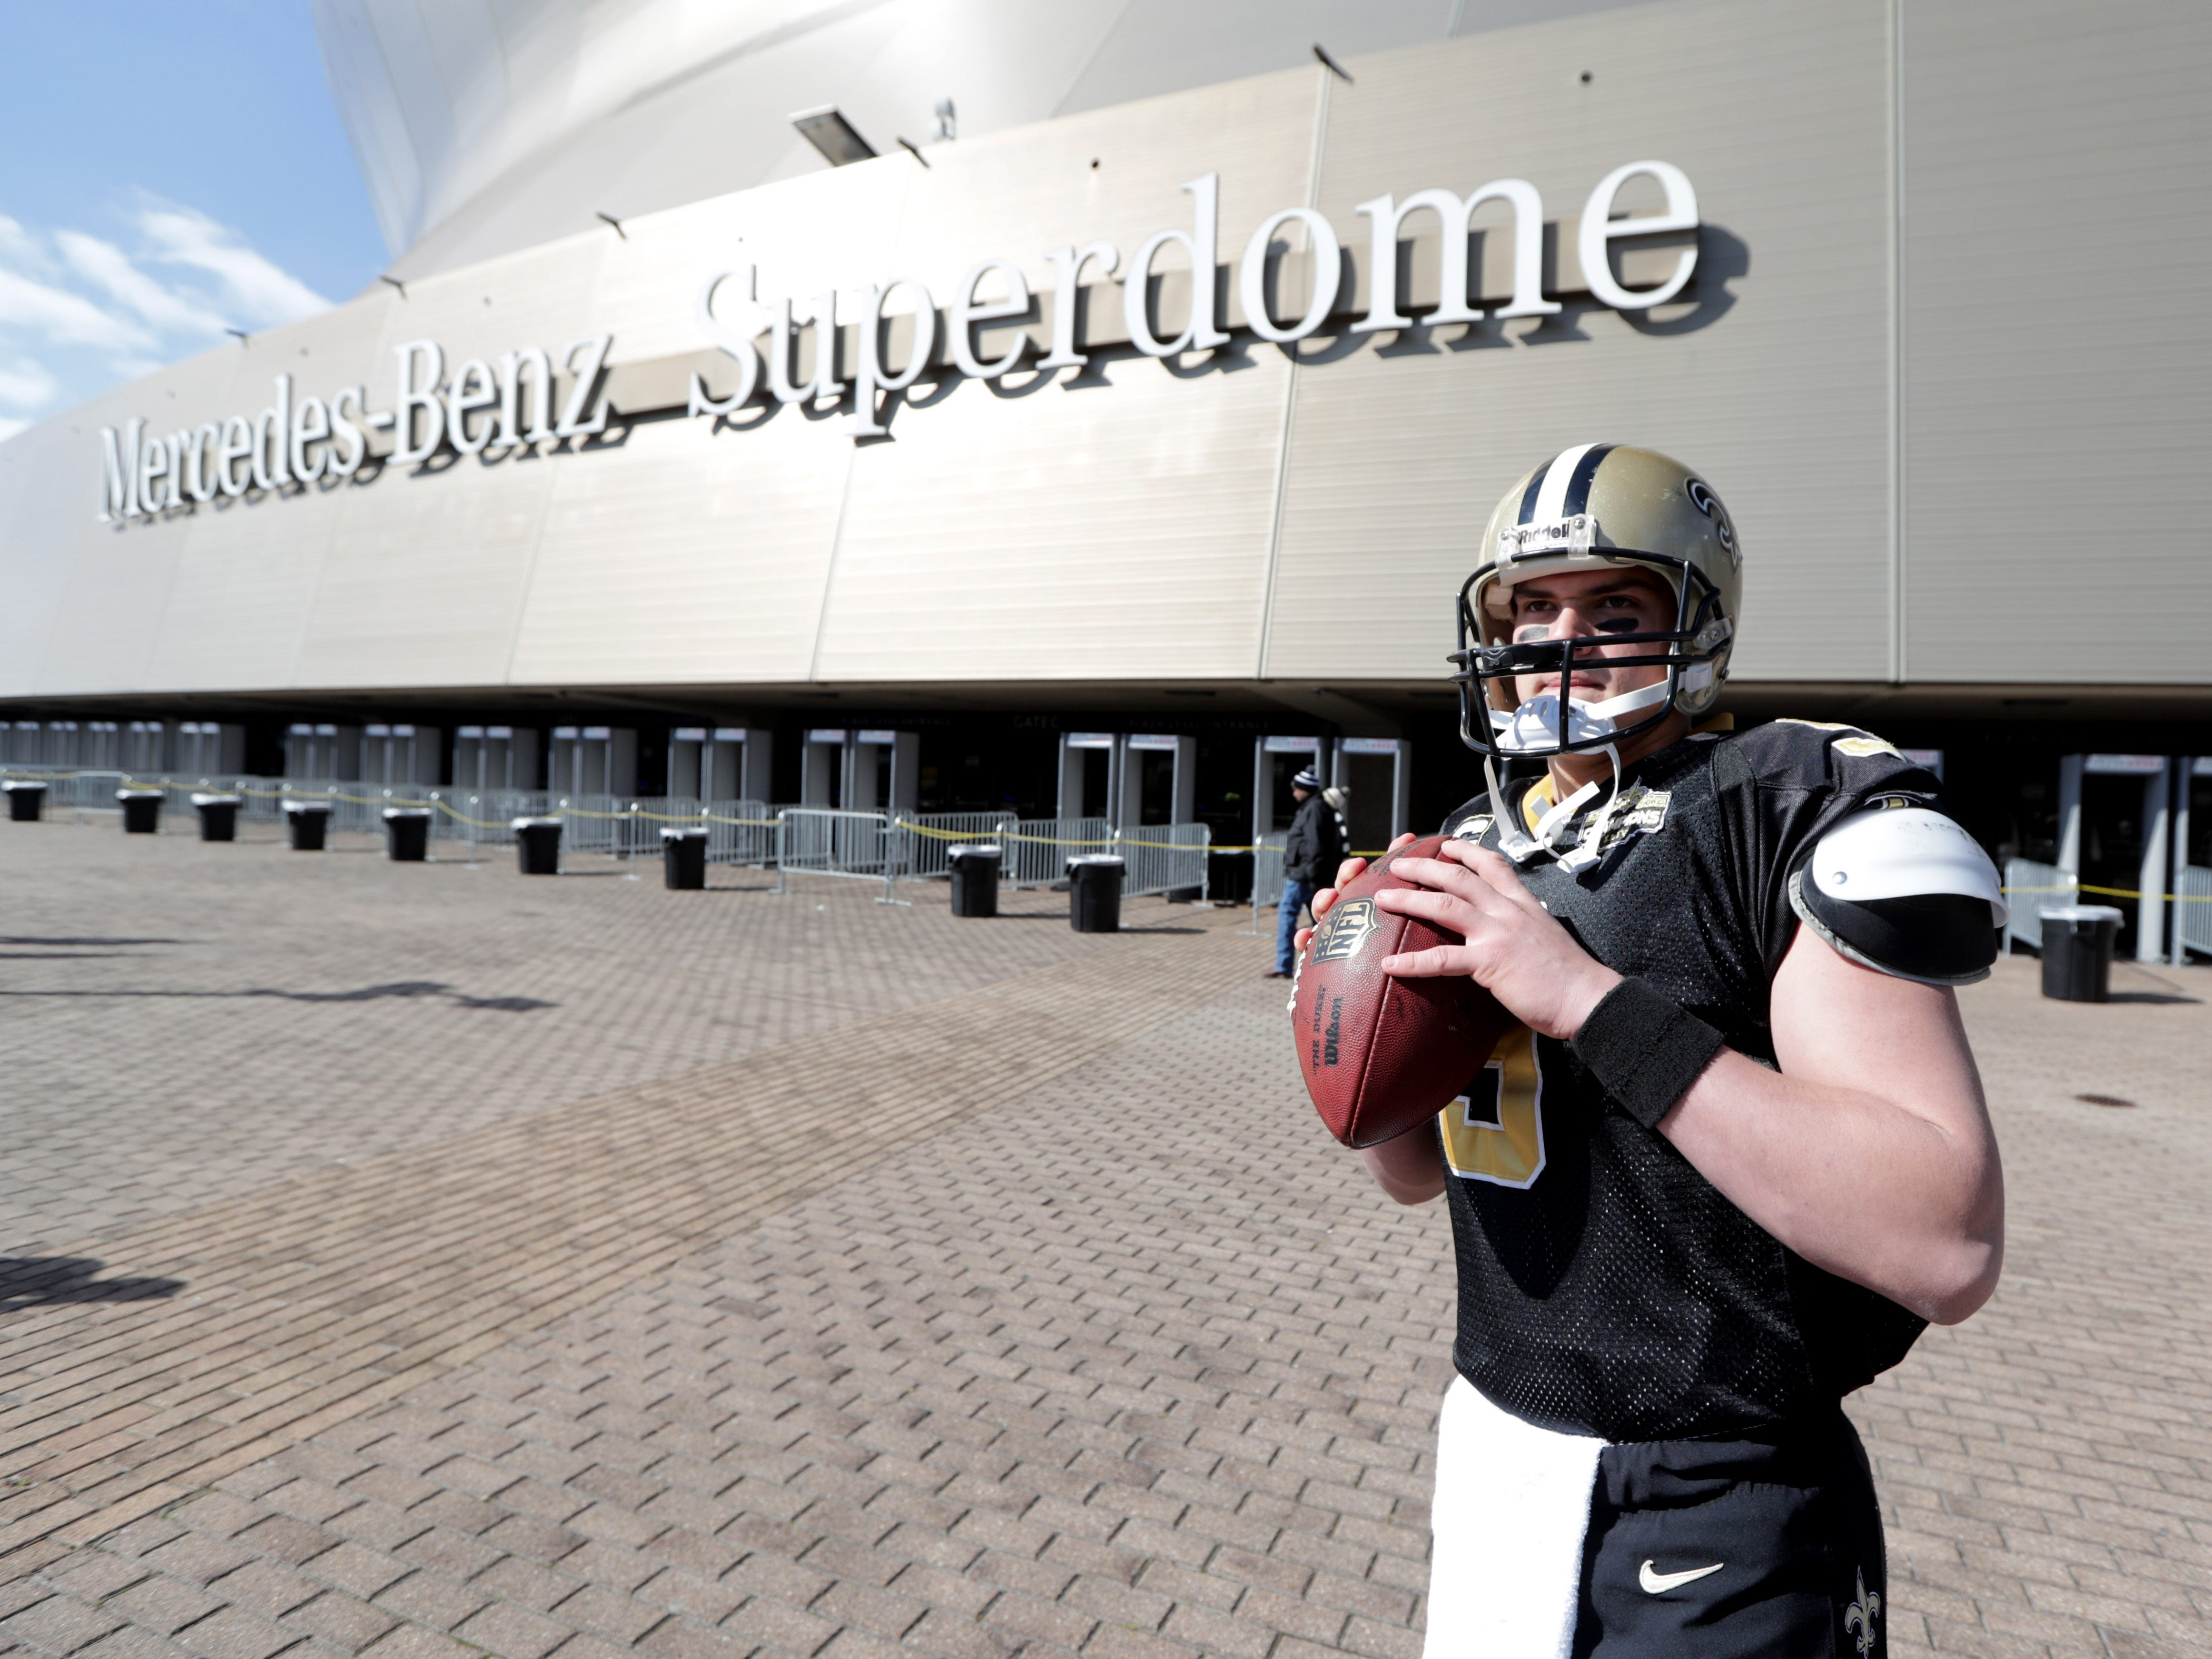 New Orleans Saints fan Felix Joseph of Abbeville, La., poses while dressed as Saints quarterback Drew Brees outside the Mercedes-Benz Superdome before the NFC Championship game between the Saints and the Los Angeles Rams.